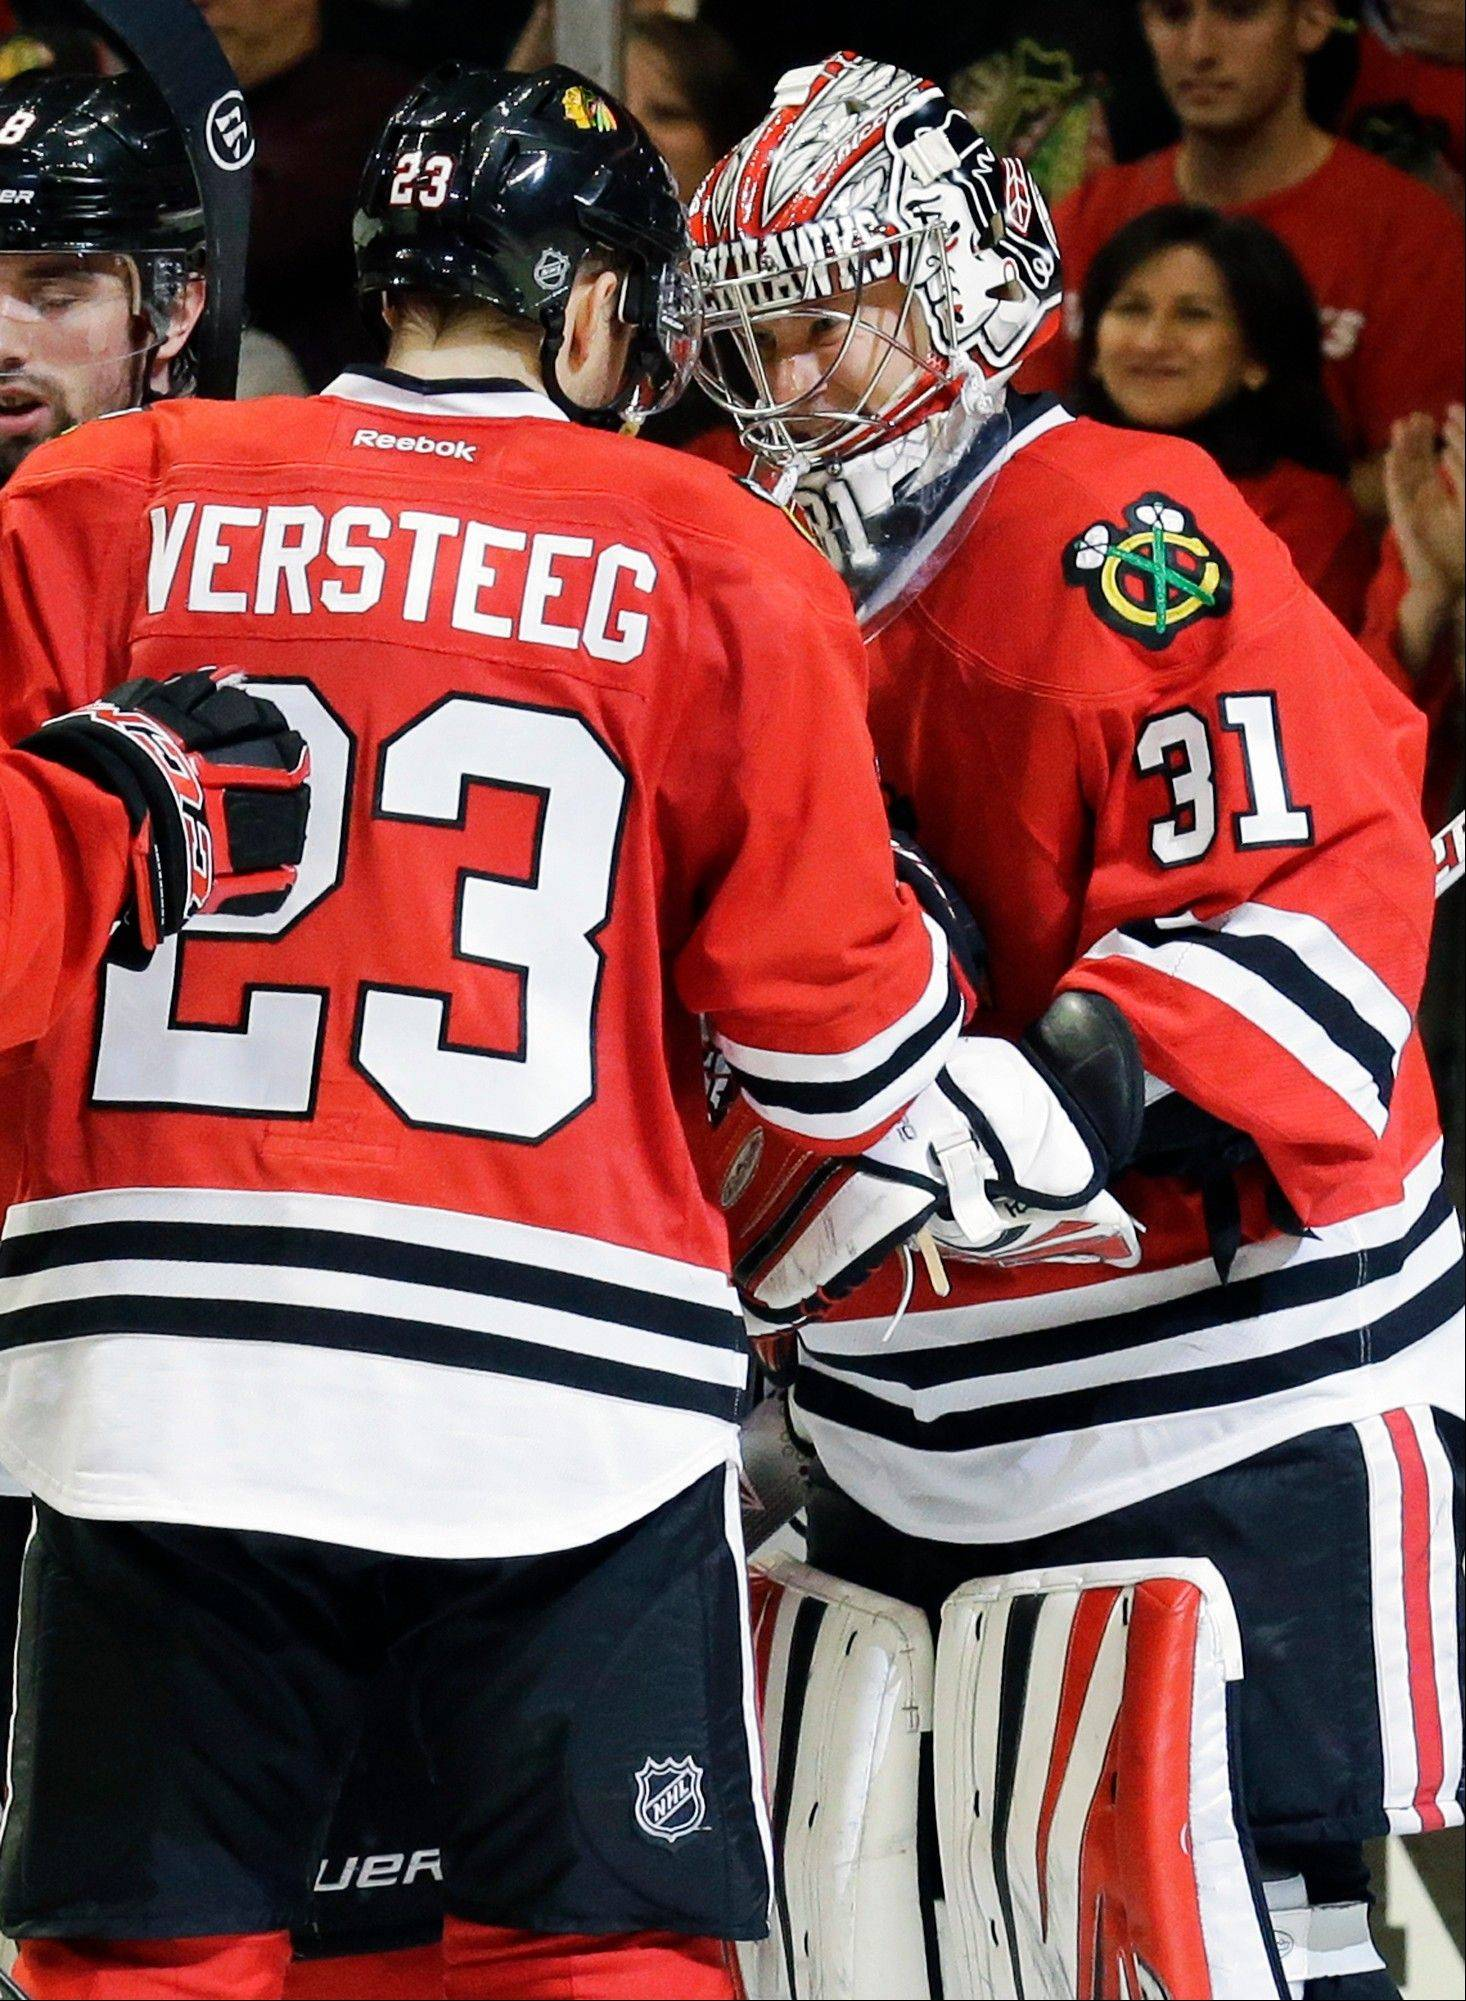 Blackhawks goalie Antti Raanta is congratulated by Kris Versteeg after Sunday night's 3-1 victory over the Kings at the United Center.